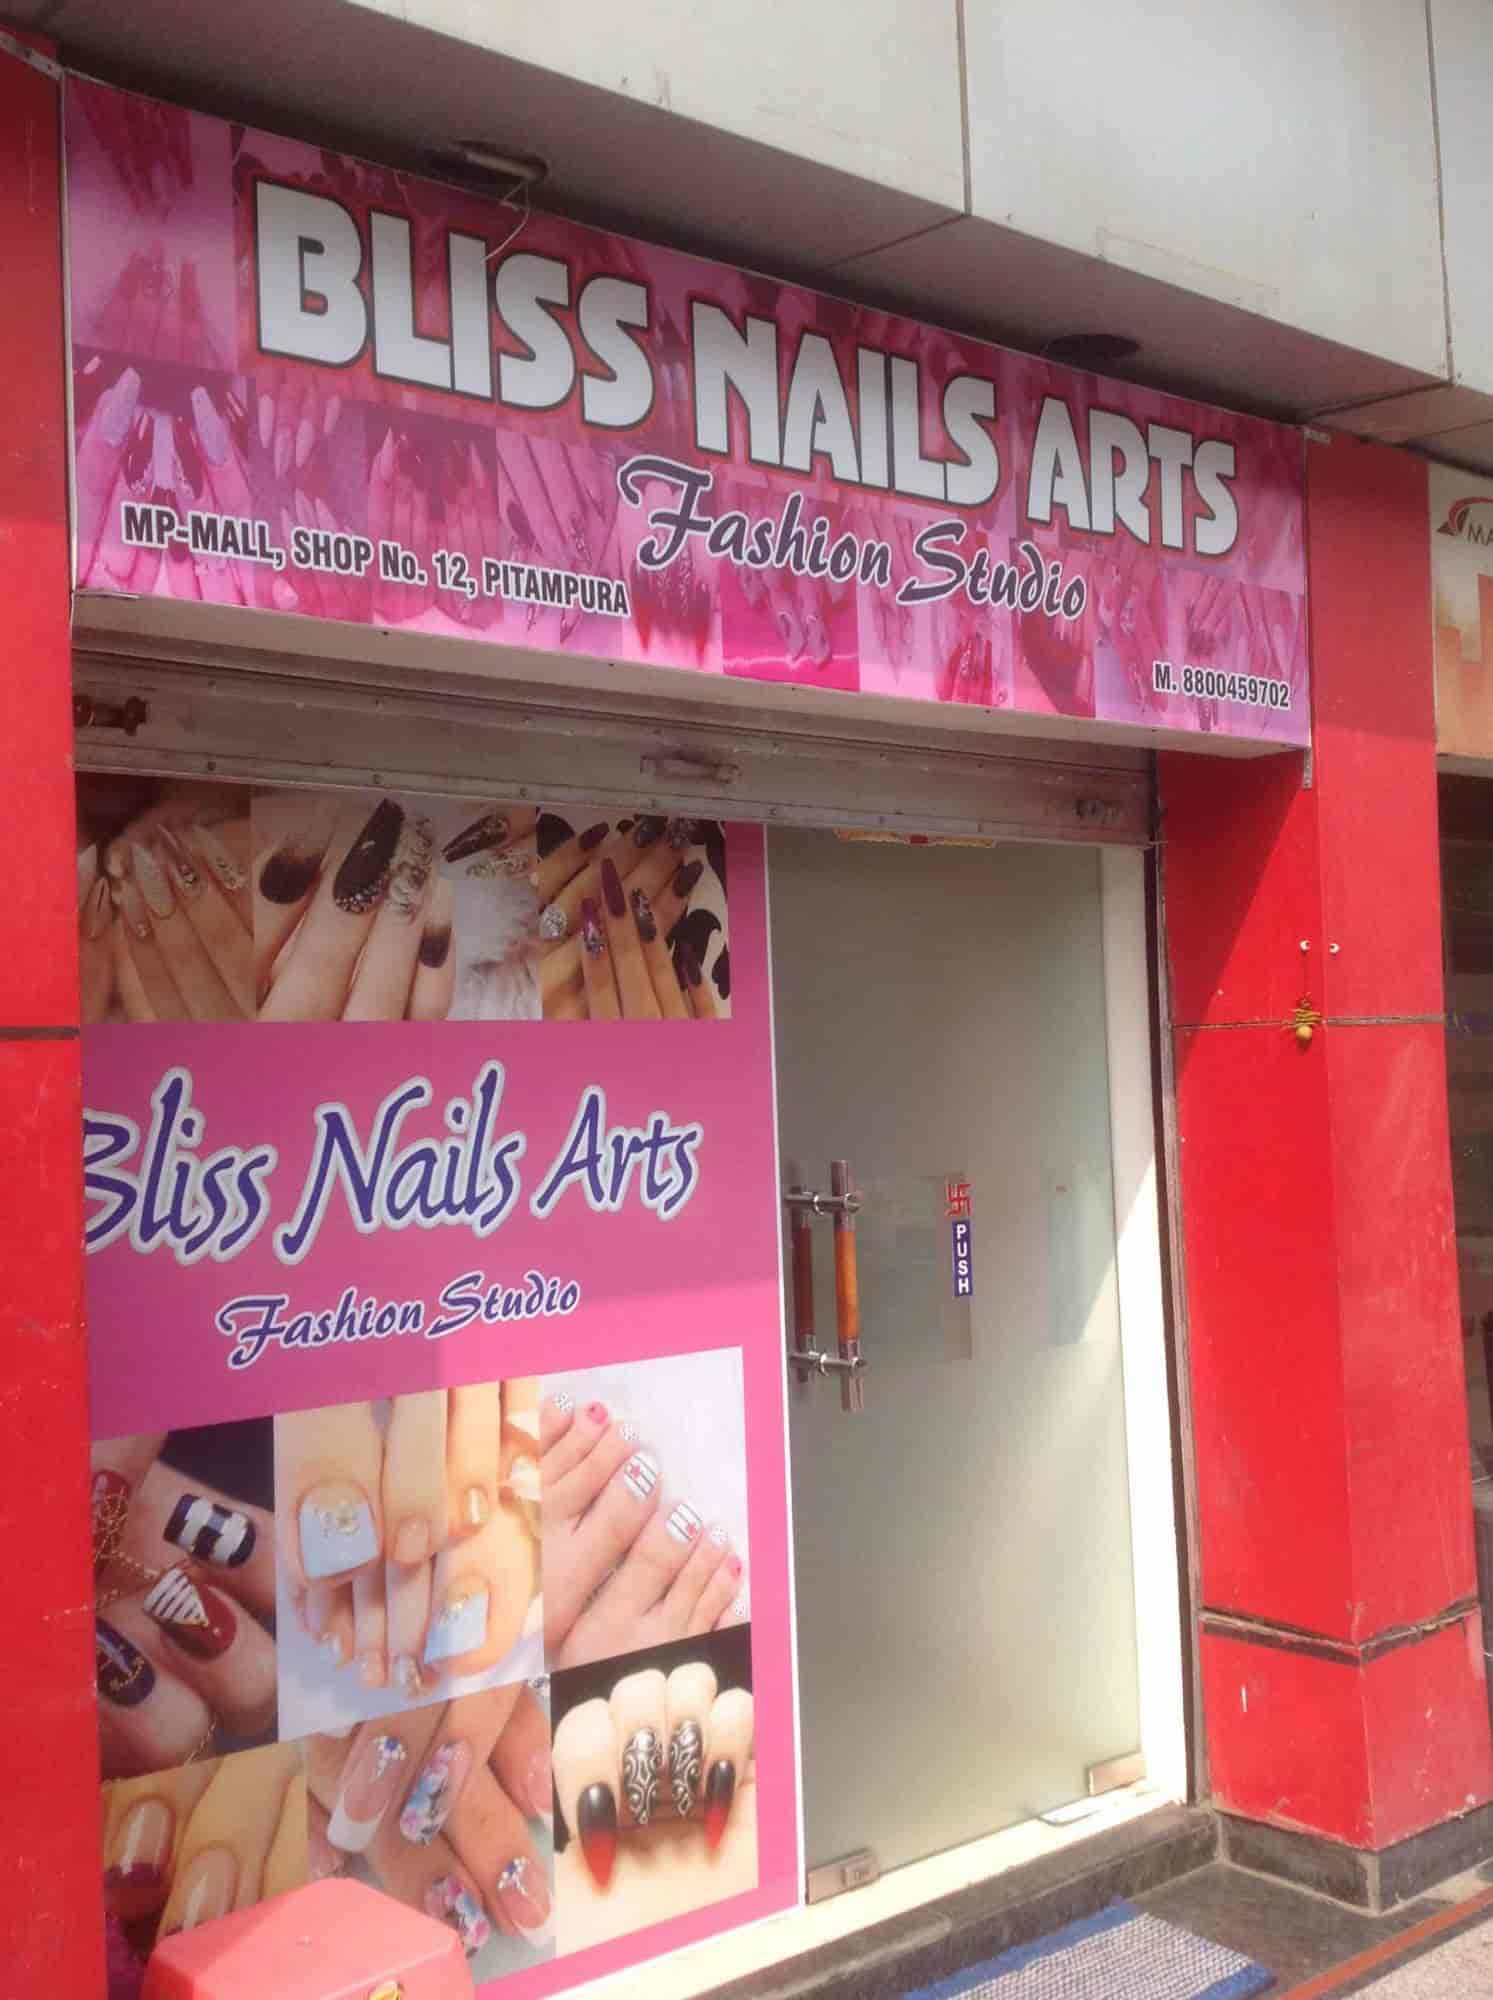 Bliss Nail Art Photos, Pitampura, Delhi- Pictures & Images Gallery ...